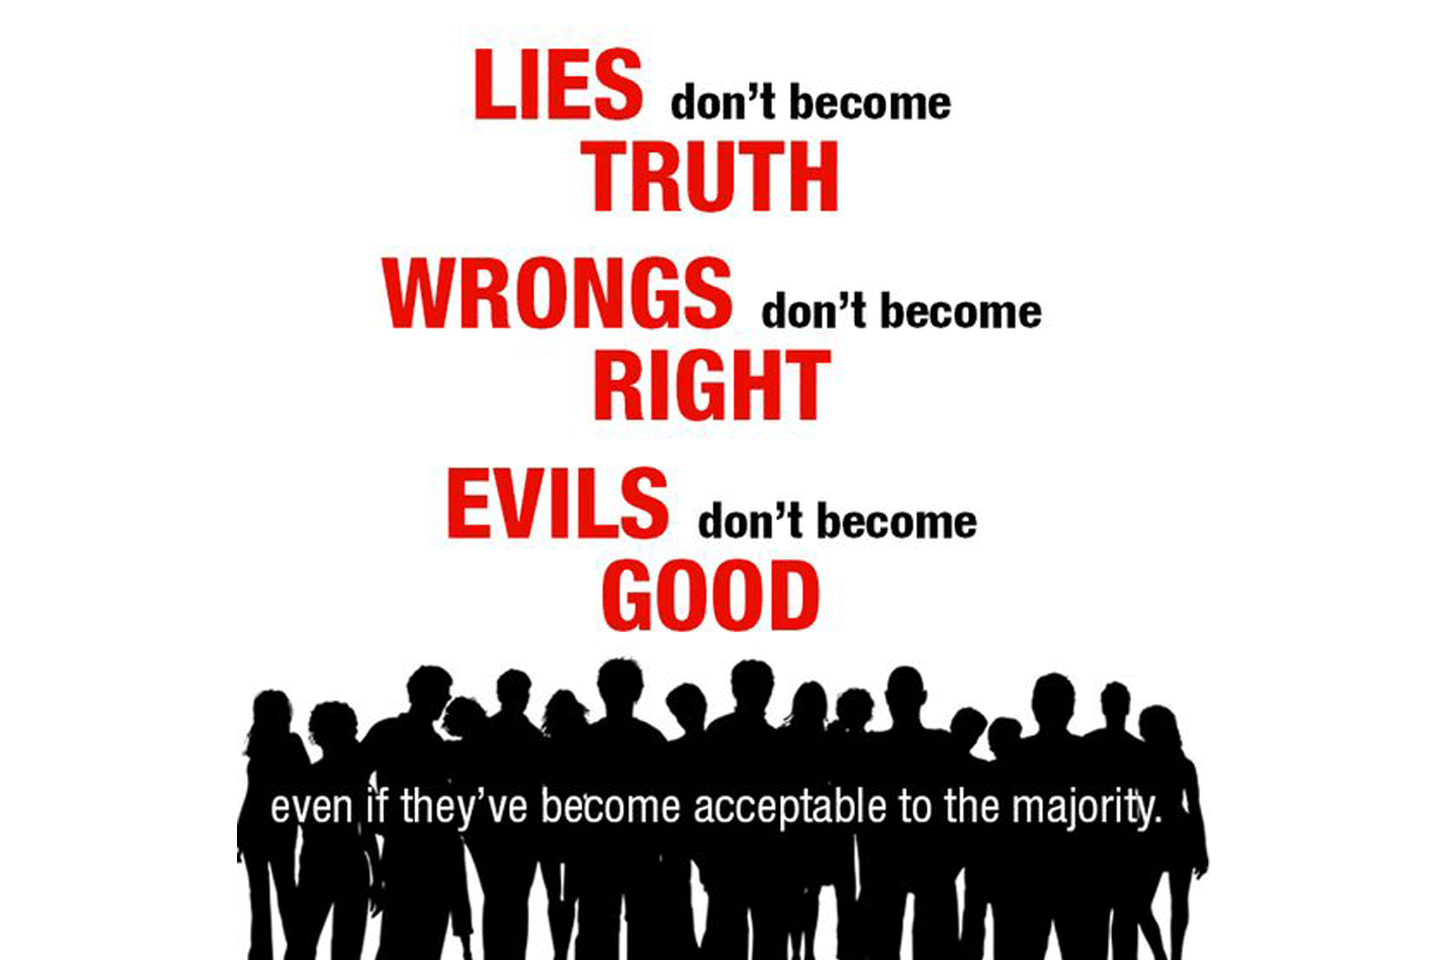 """""""Lies don't become truth, wrongs don't become right, evils don't become good, even if they've become acceptable to the majority"""""""